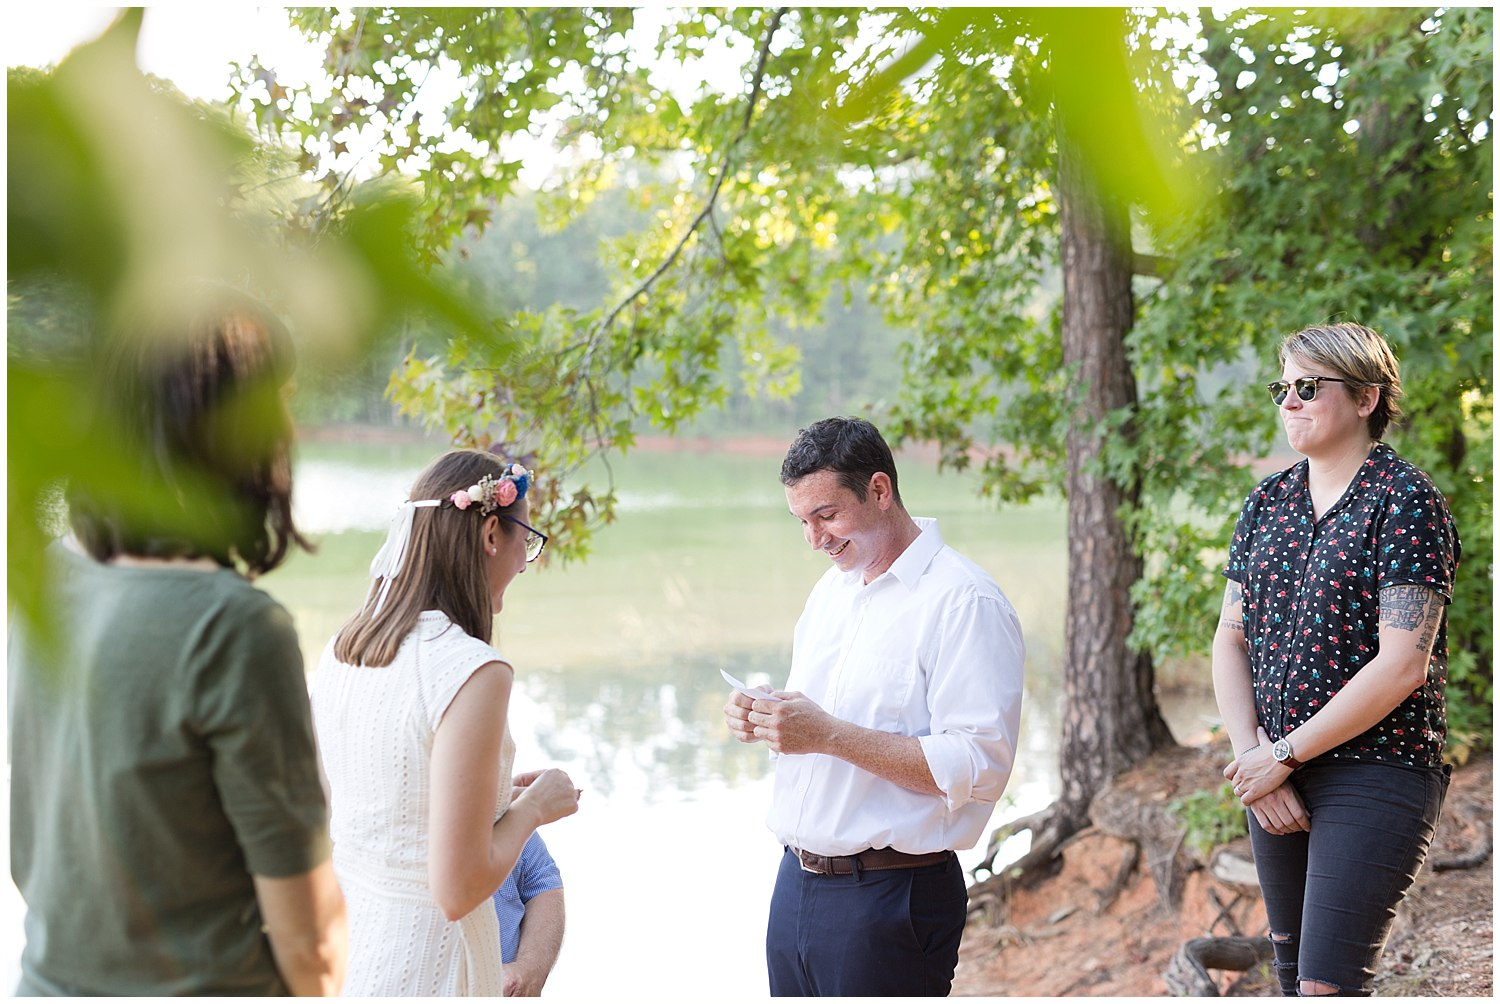 private vow ceremony outdoors - destination wedding photographer